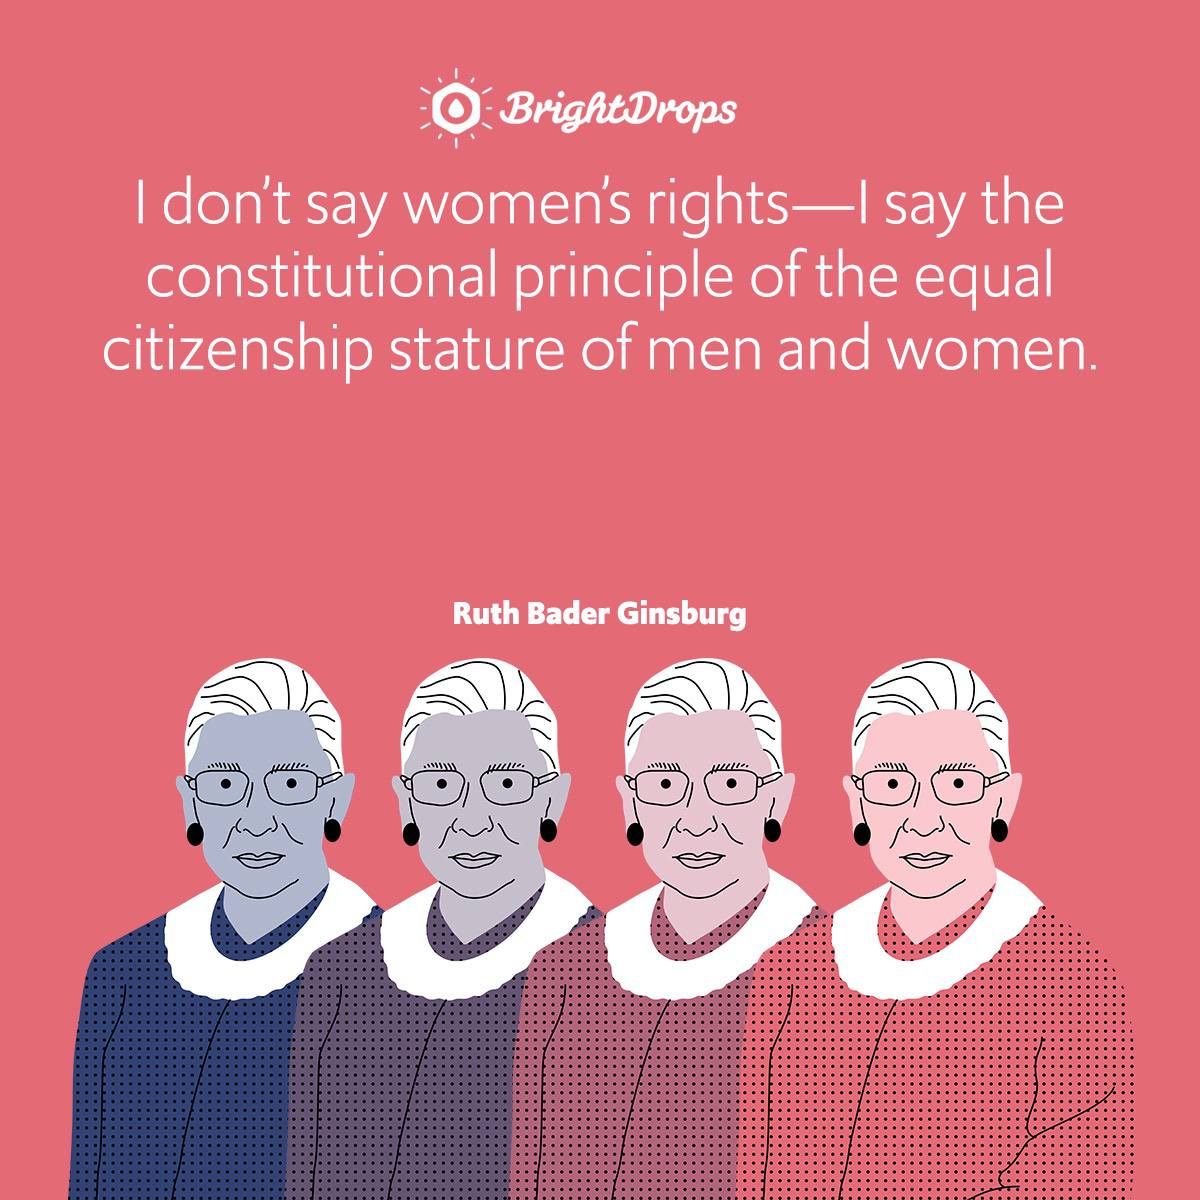 I don't say women's rights—I say the constitutional principle of the equal citizenship stature of men and women.